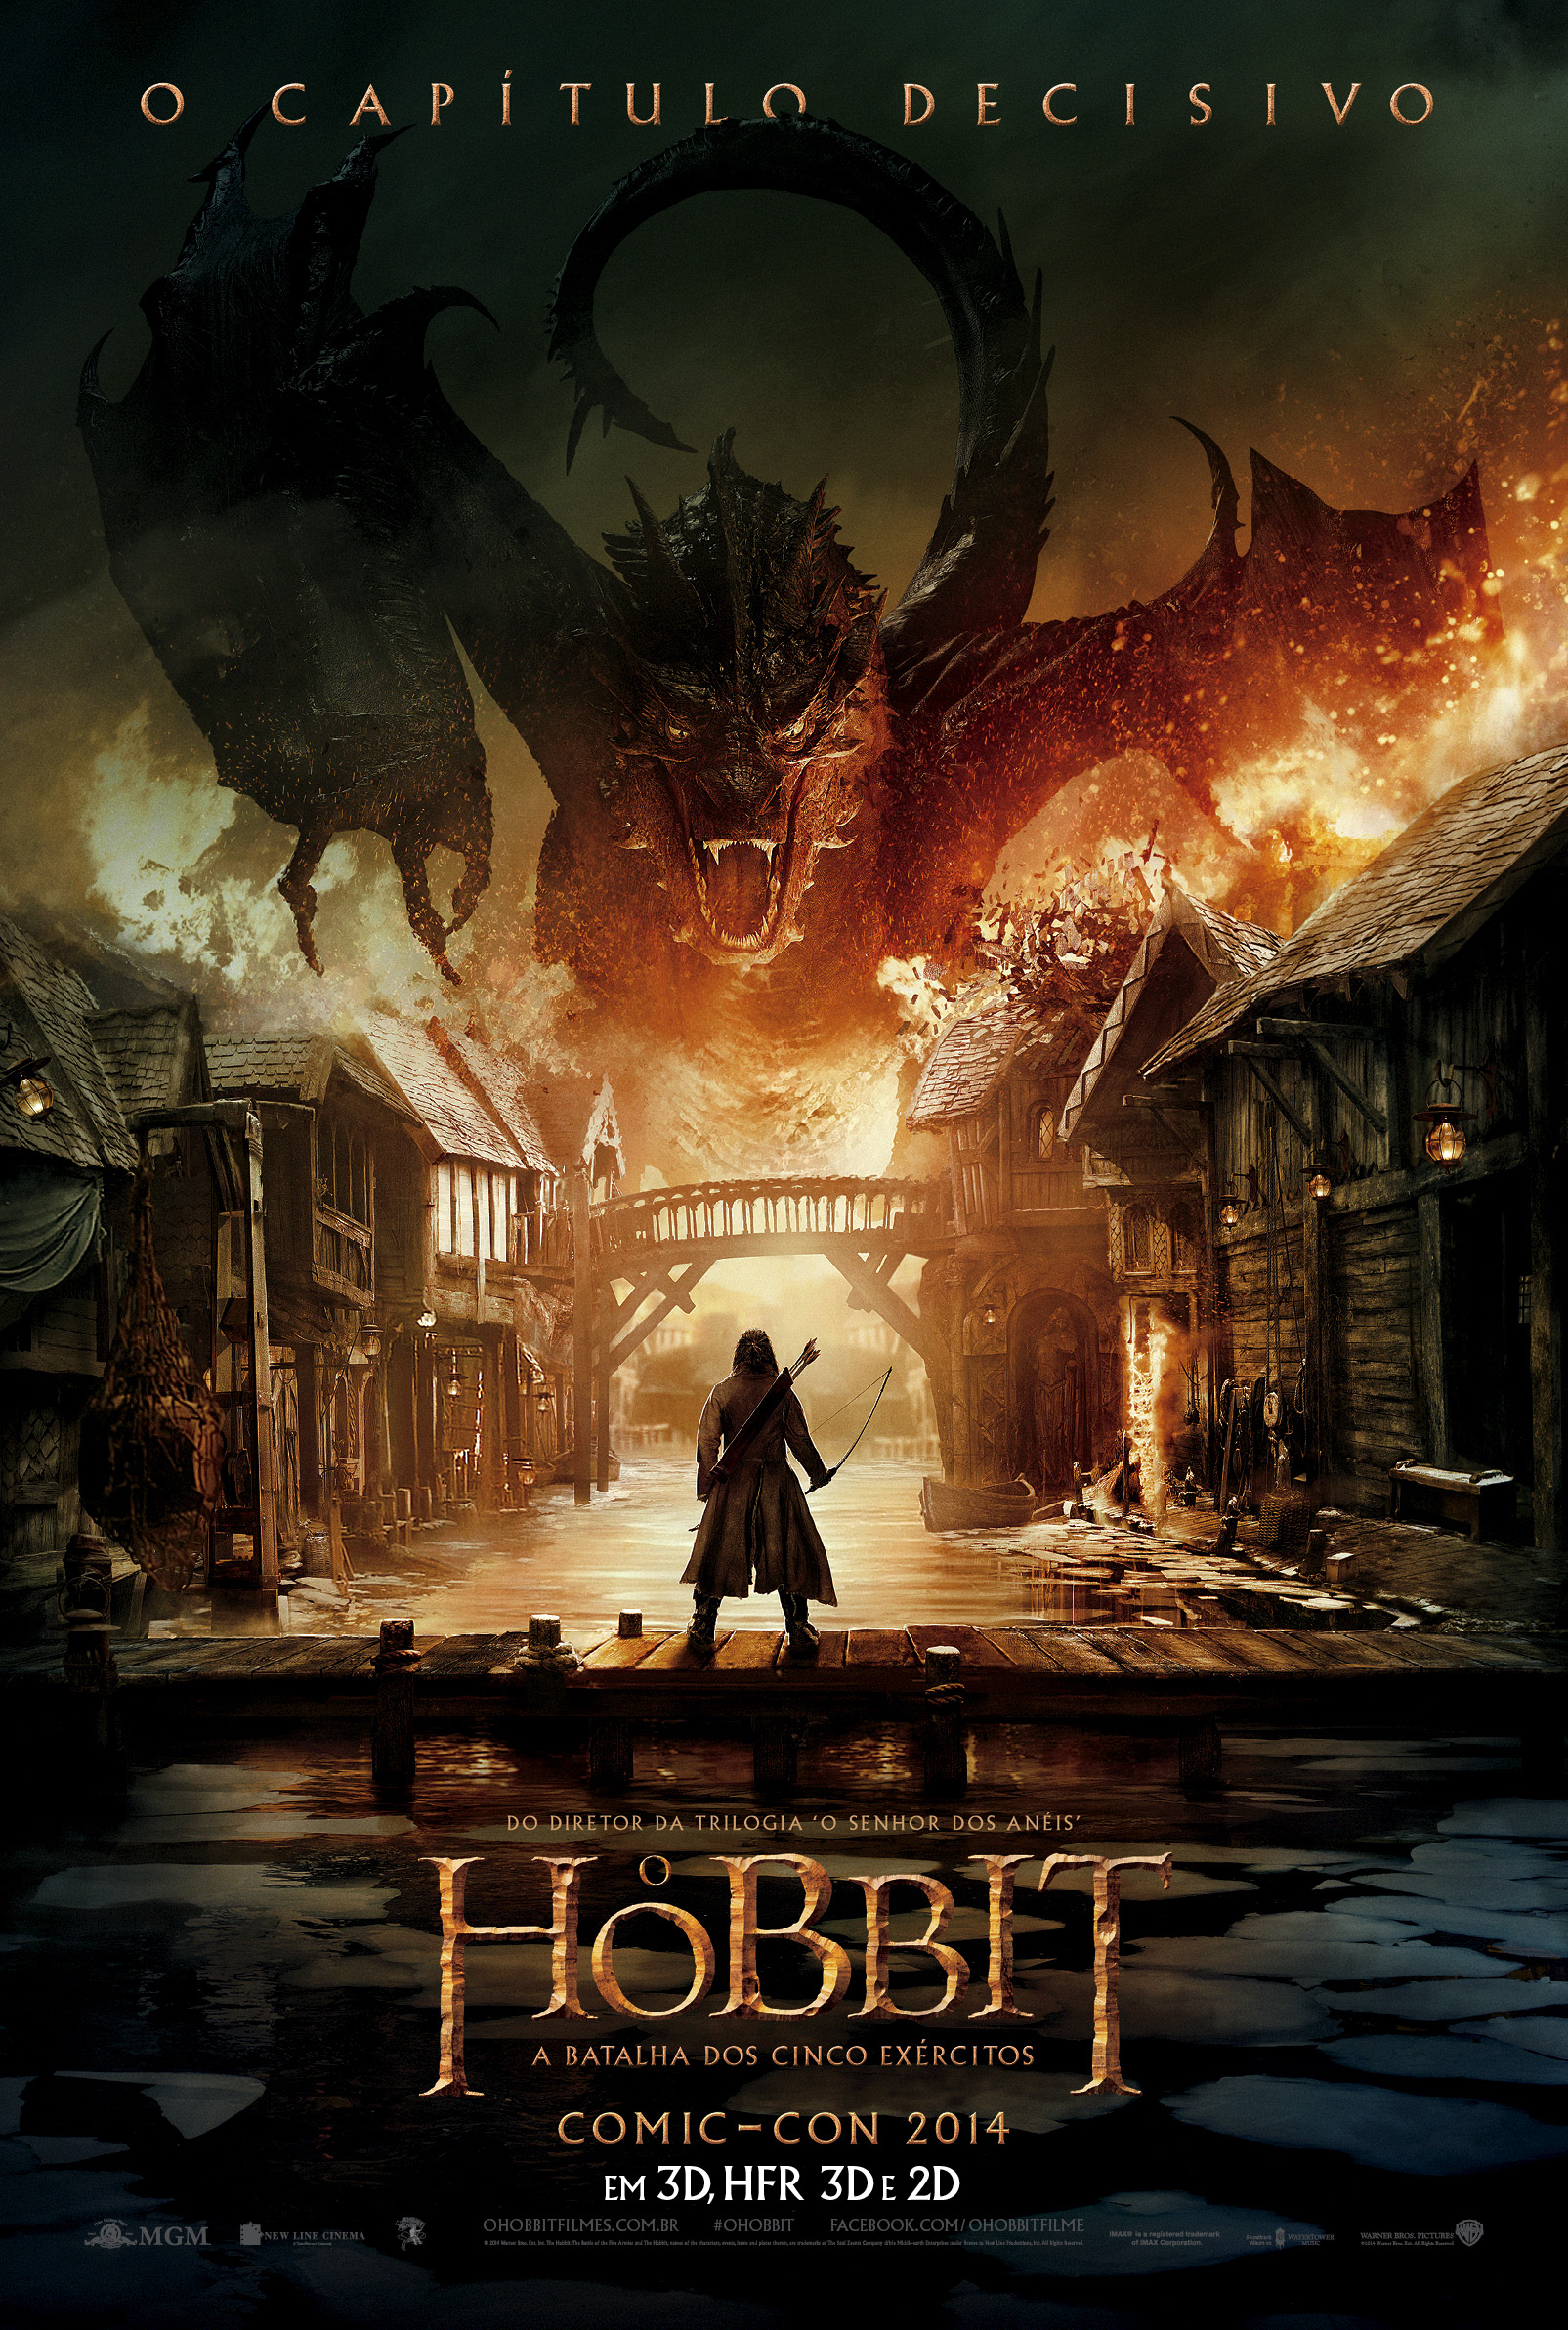 The Hobbit The Battle of the Five Armies-Official brasil POSTER-14NOVEMBRO2014-01